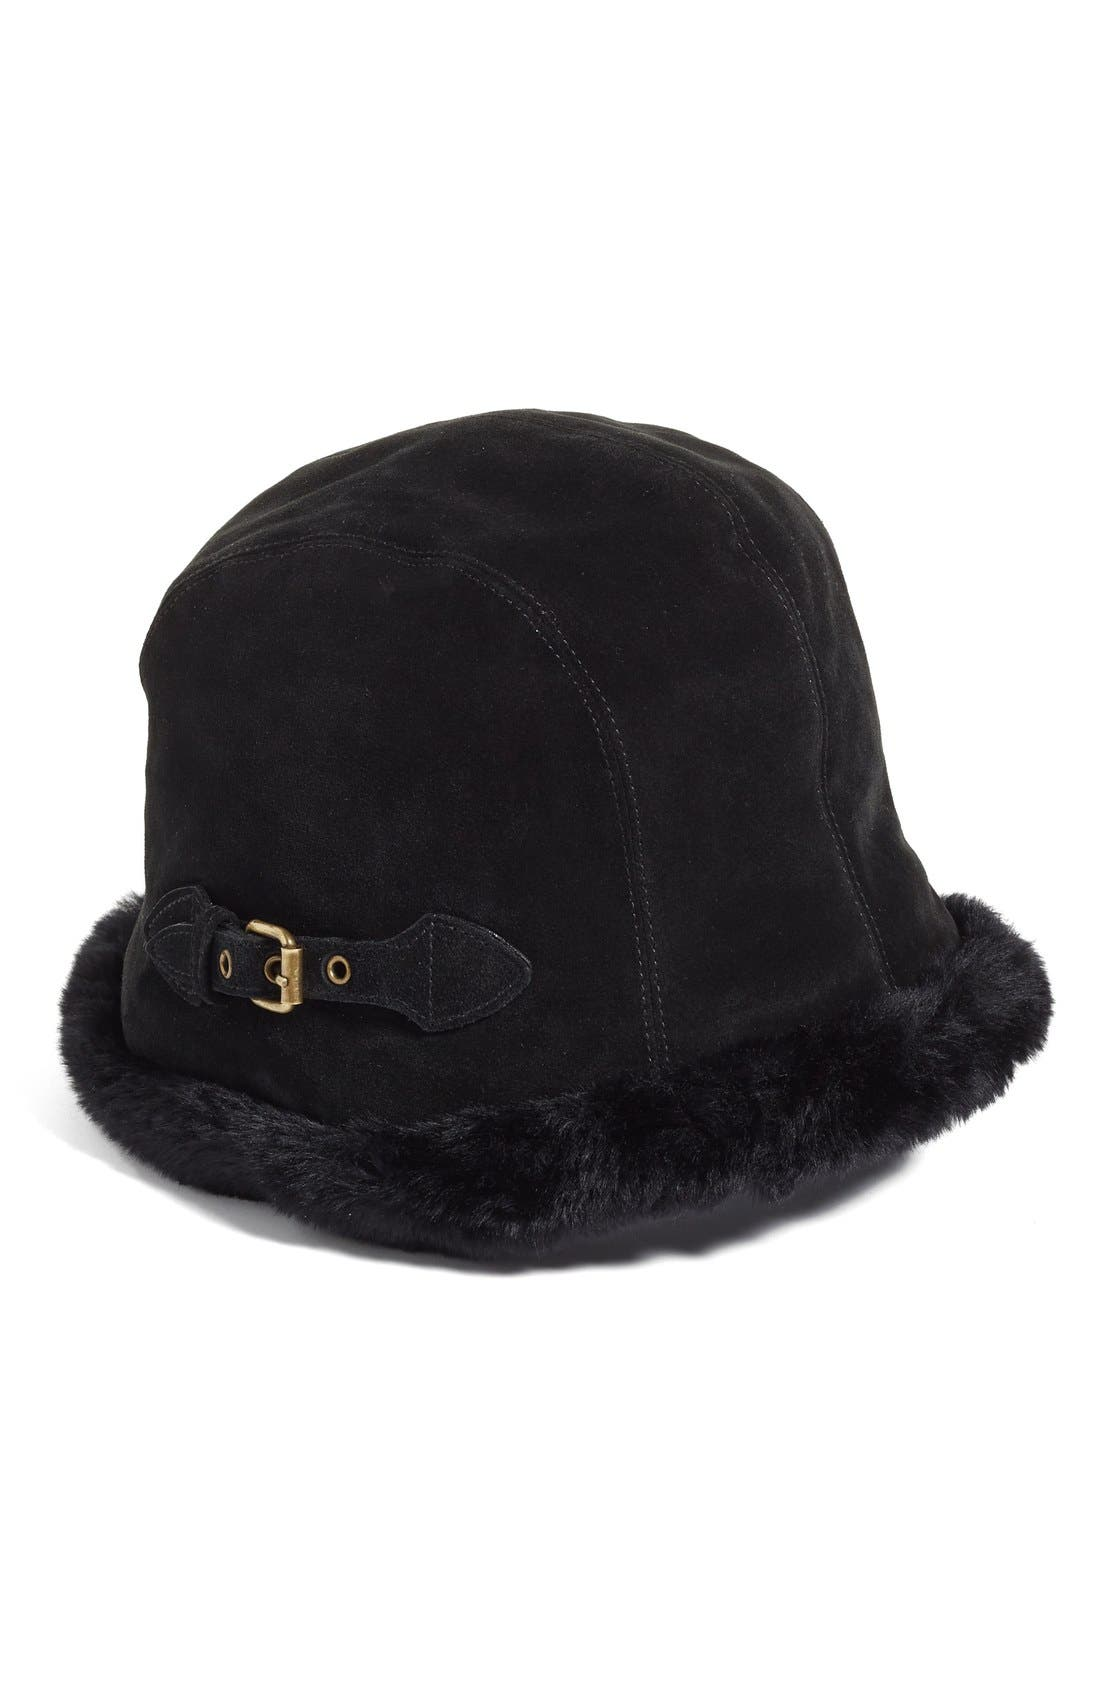 ERIC JAVITS Vail Water Repellent Suede Cloche with